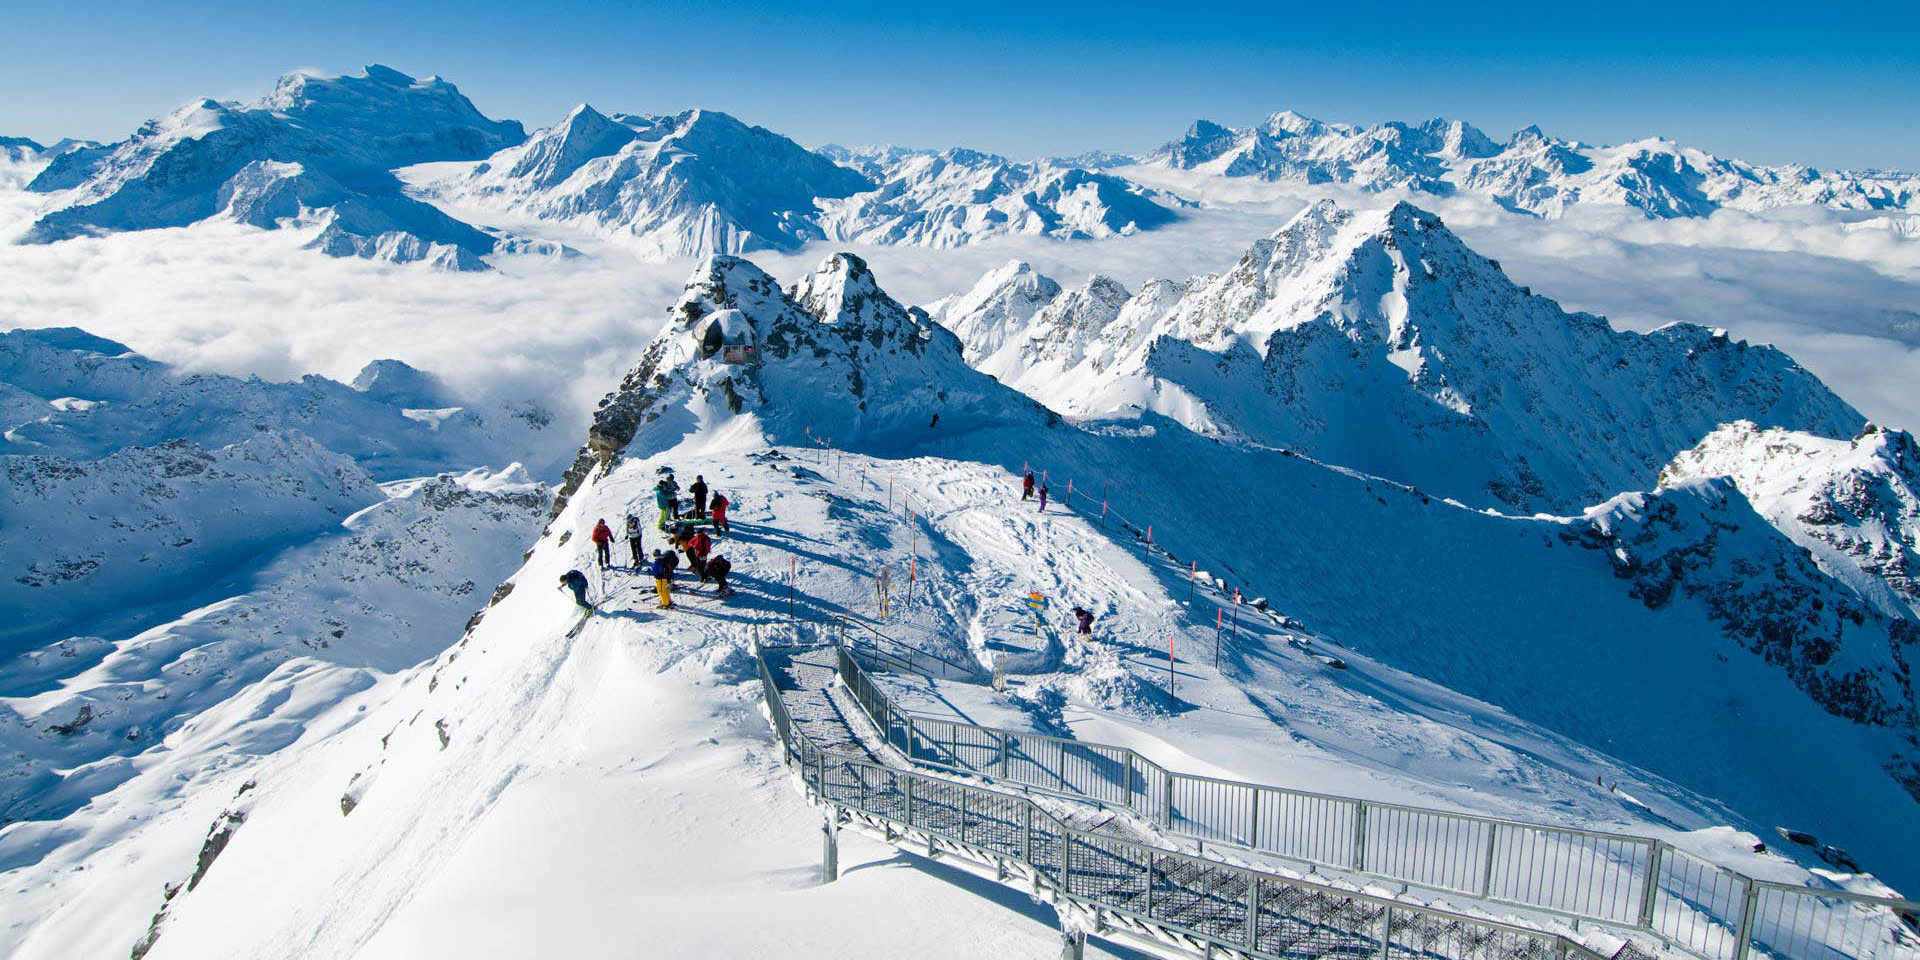 Les 4 Vallees Zwitserland